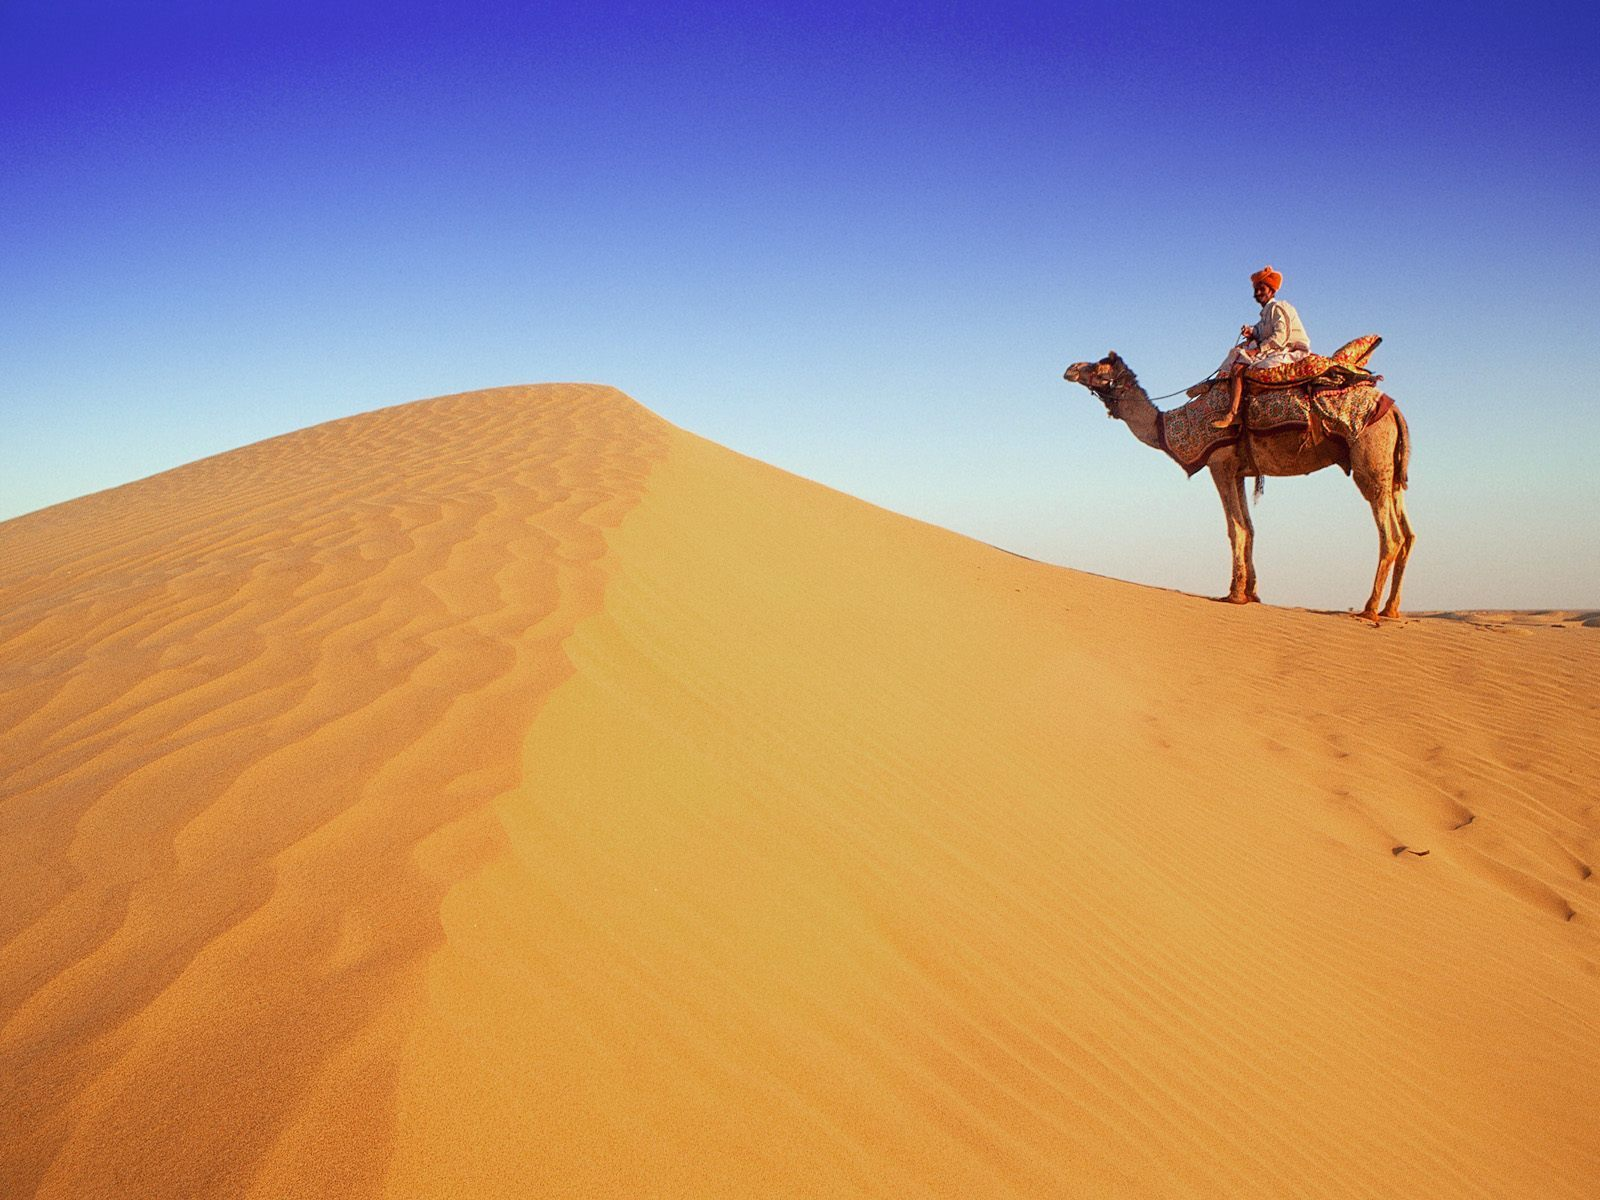 12065 download wallpaper Animals, Landscape, Sand, Desert, Camels screensavers and pictures for free